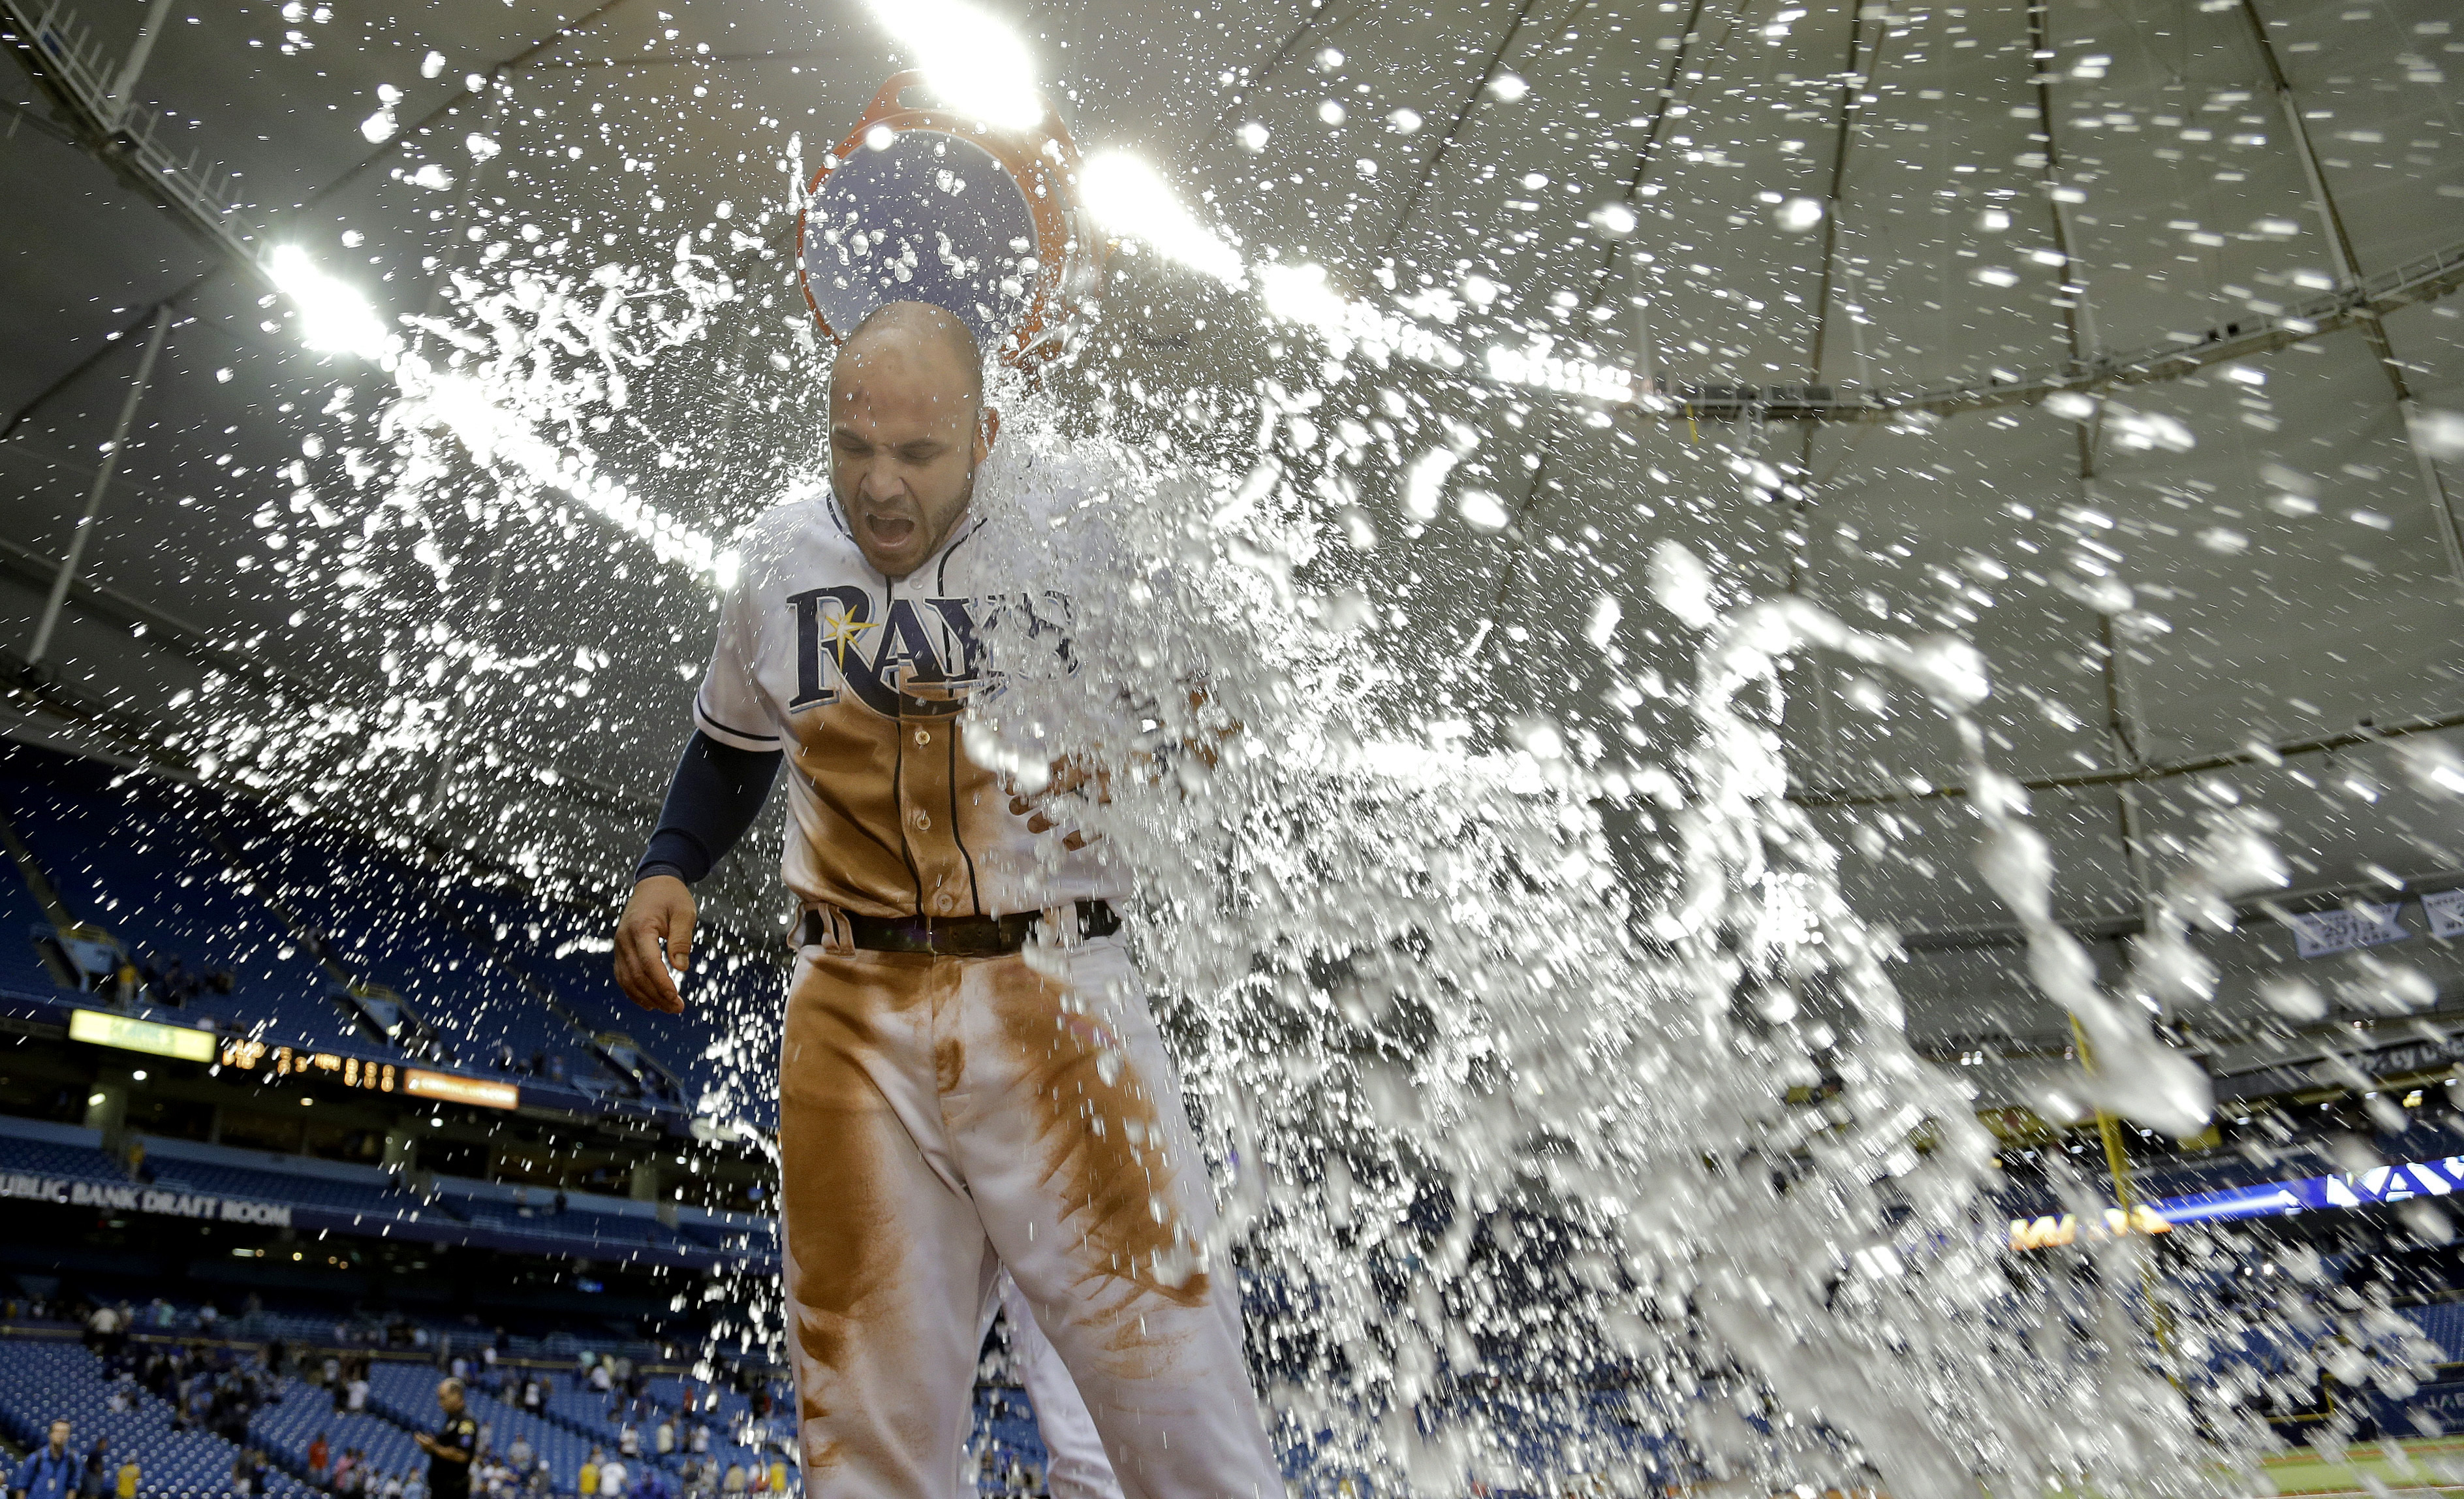 Tampa Bay Rays' Steve Pearce gets doused with ice water from starting pitcher Chris Archer after the Rays defeated the Los Angeles Dodgers 8-5 during an interleague baseball game Wednesday, May 4, 2016, in St. Petersburg, Fla. (AP Photo/Chris O'Meara)